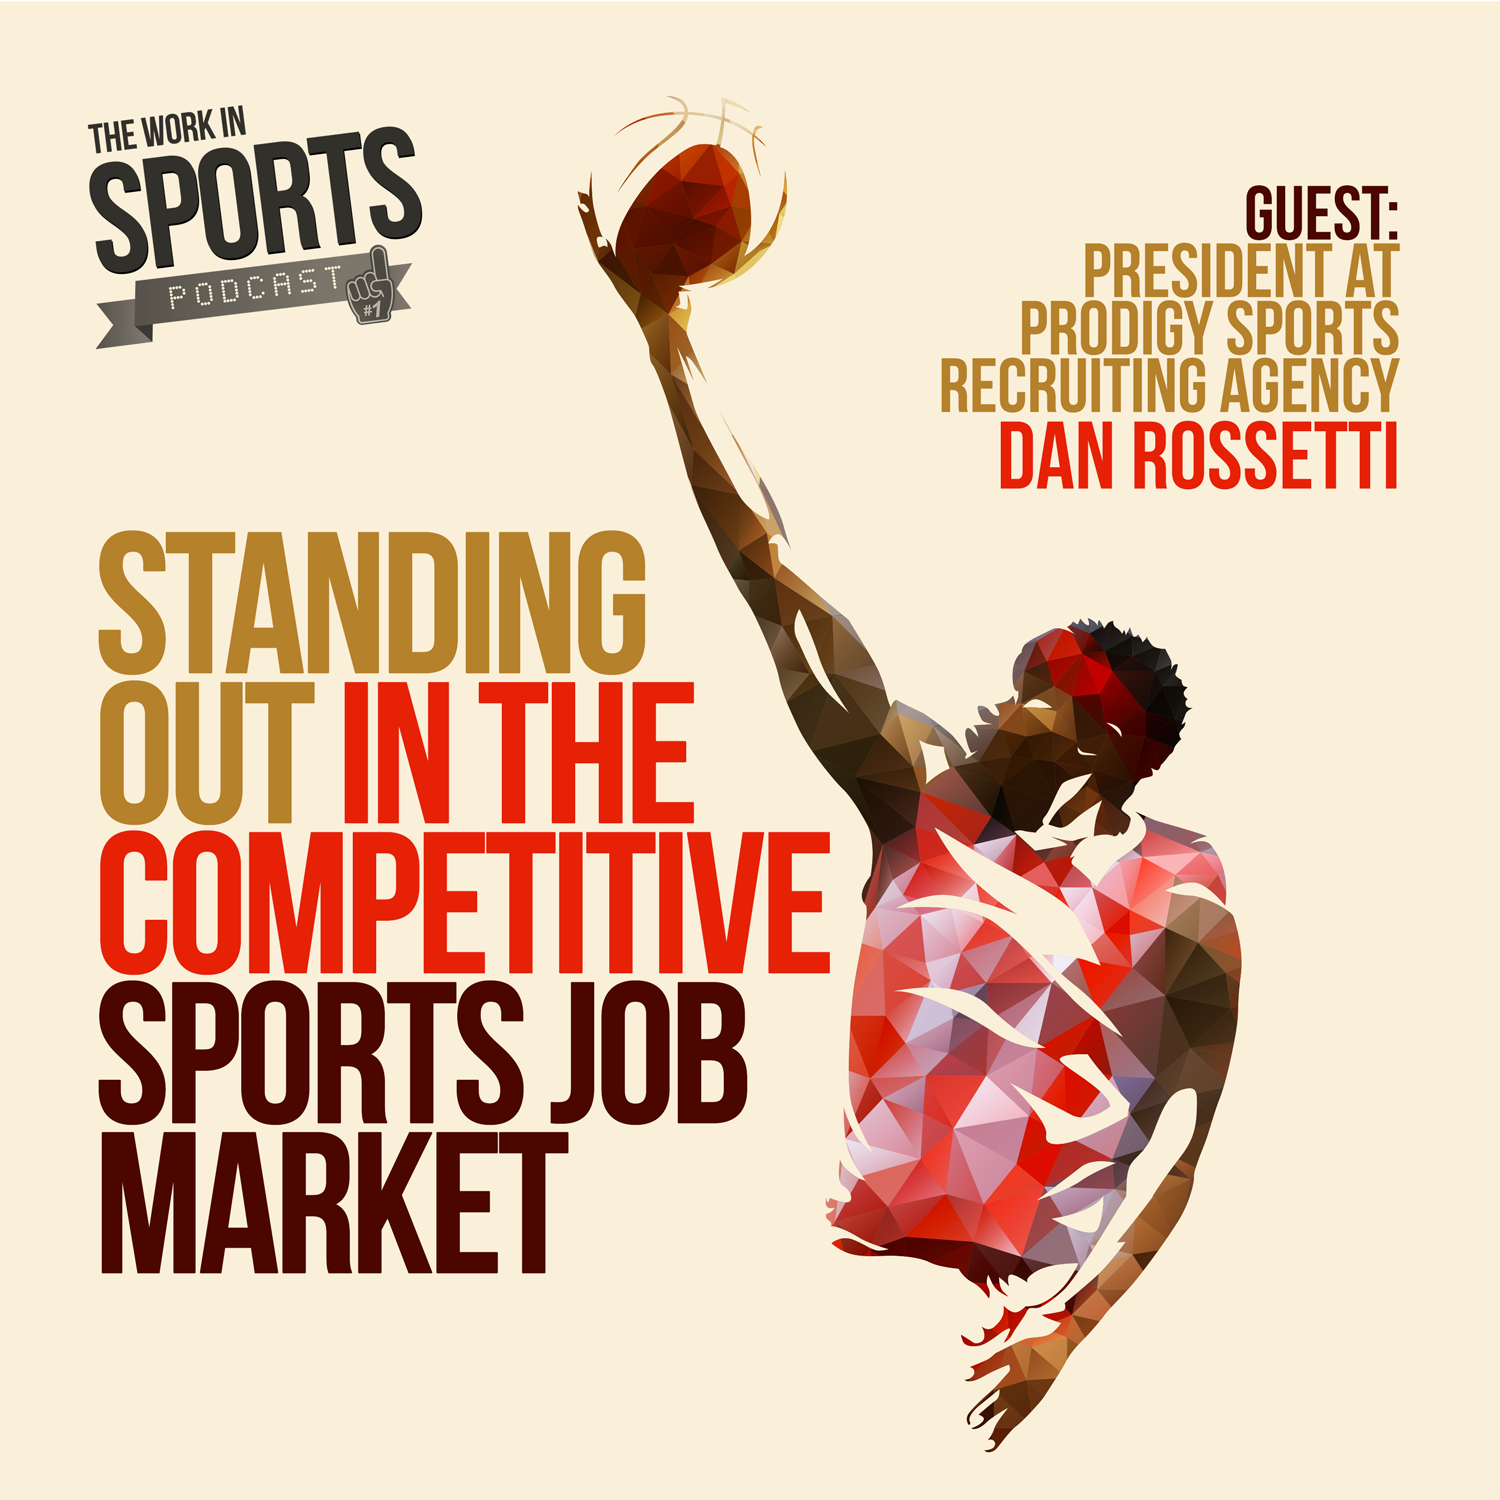 standing out in the competitive sports market